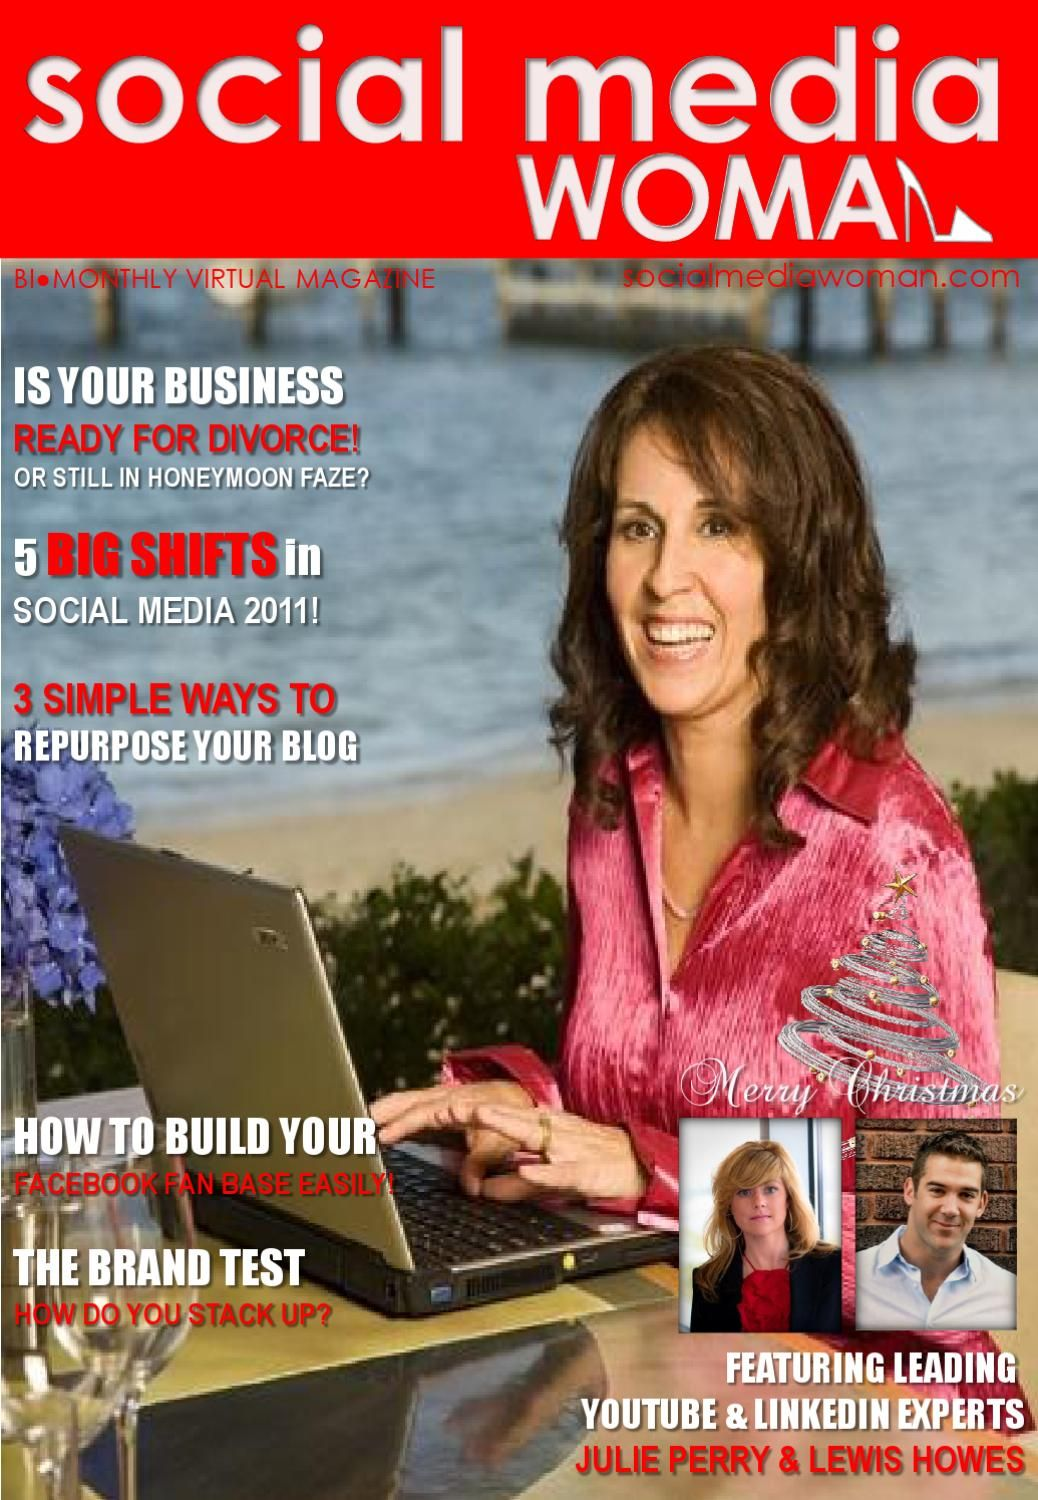 Social Media Woman Dec Edition  http://www.socialmediawoman.com/magazine Get the most up-to-date social media marketing strategies from the leading social media experts from around the world that you can implment immediately into your business and start seeing results. Pam Brossman is a leading Video Marketing Speaker, Author, Trainer and Consultant providing a communication platform to benefit global online business owners wishing to market their business, brand and services effectively ...